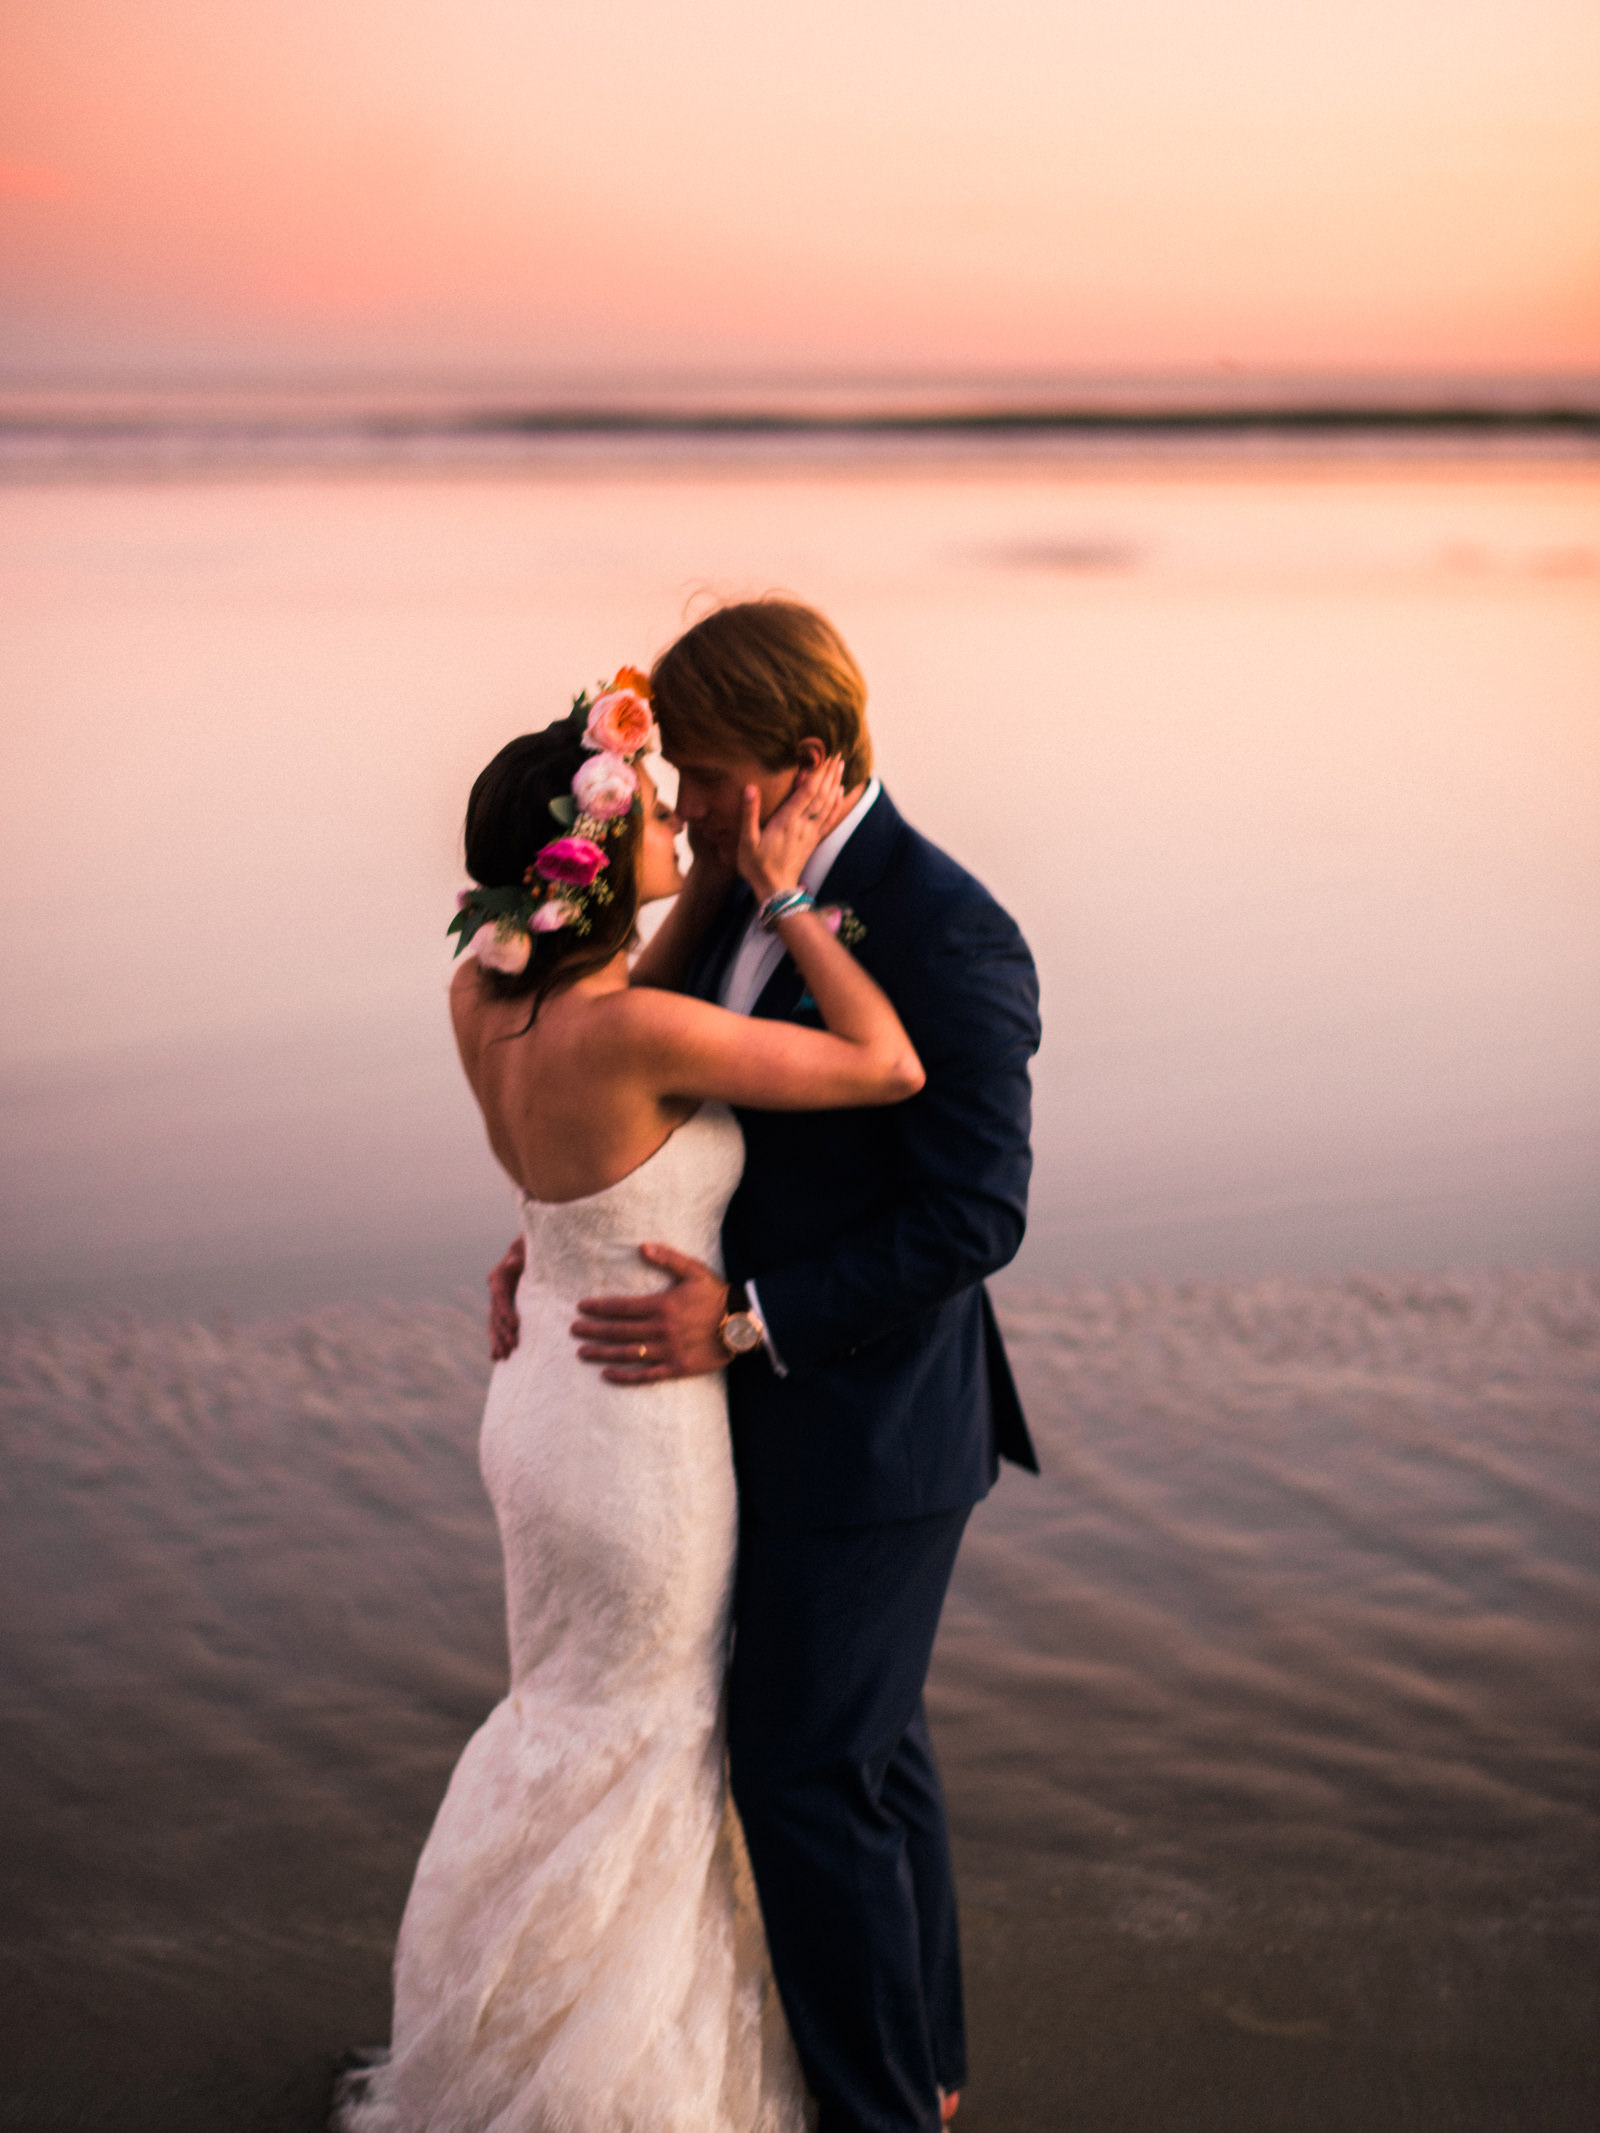 228-wickaninnish-inn-sunset-in-tofino-bc-by-best-northwest-elopement-photographer-ryan-flynn.jpg